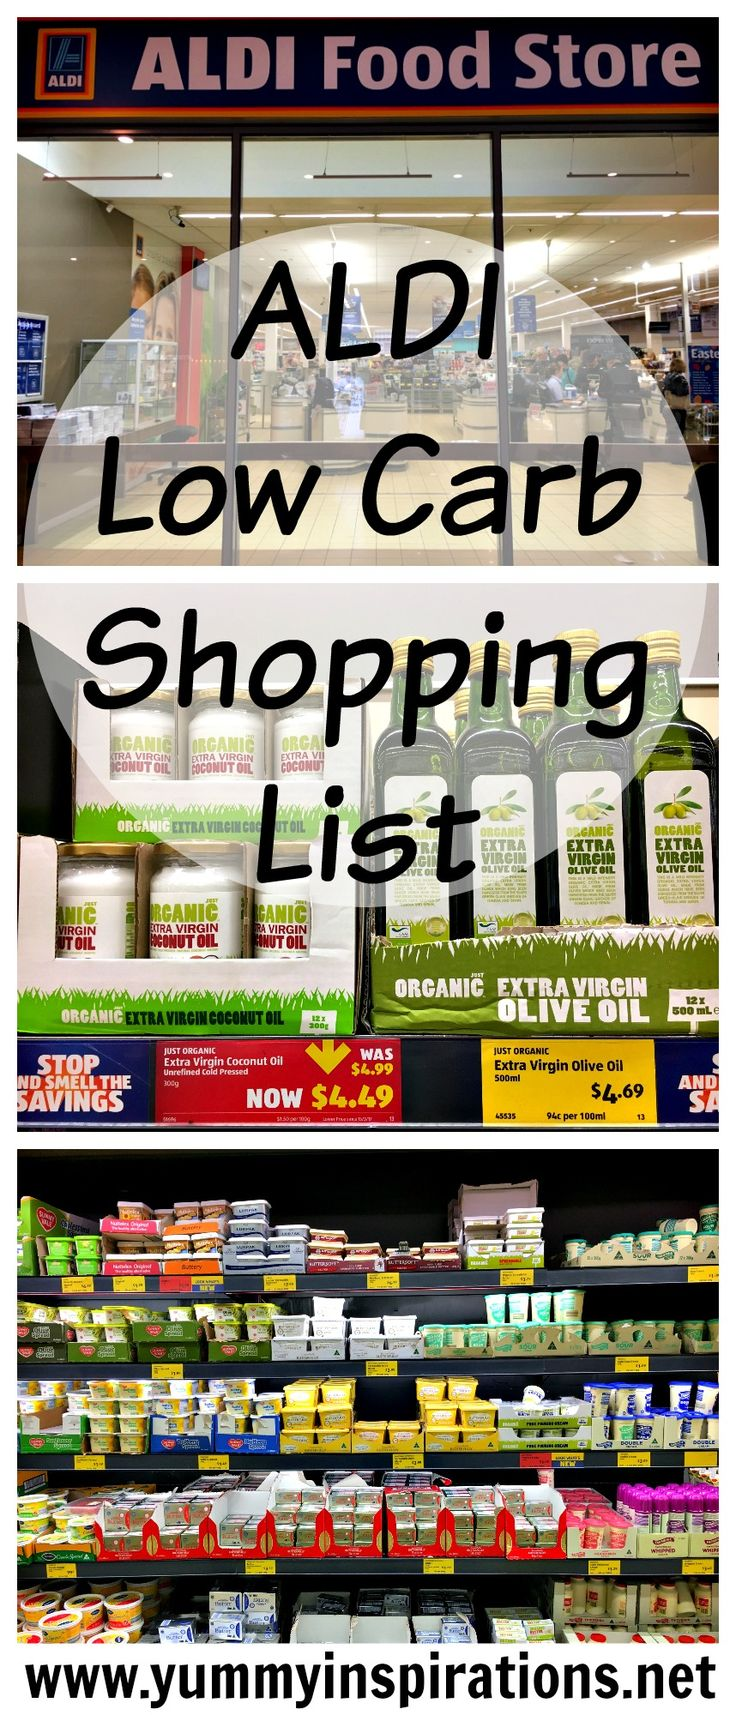 ALDI Low Carb Shopping List + Keto Diet Grocery Haul Video - a list of products to seek out at ALDI that are Ketogenic Diet friendly.